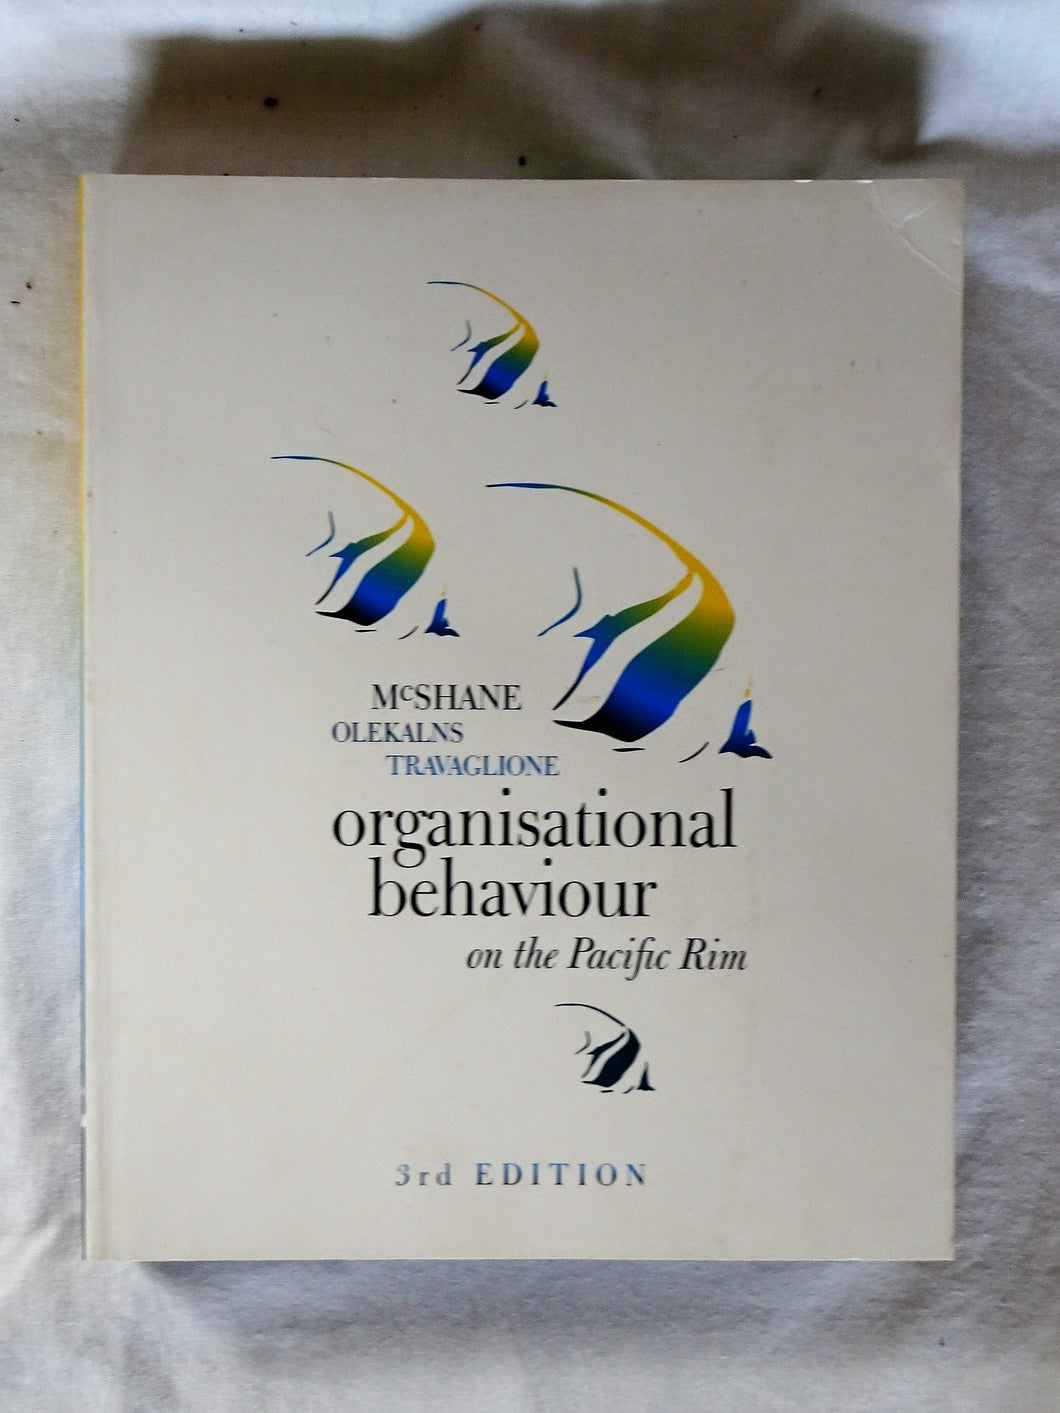 Organisational Behaviour on the Pacific Rim  3rd Edition  by Steven McShane, Mara Olekalns & Tony Travaglione